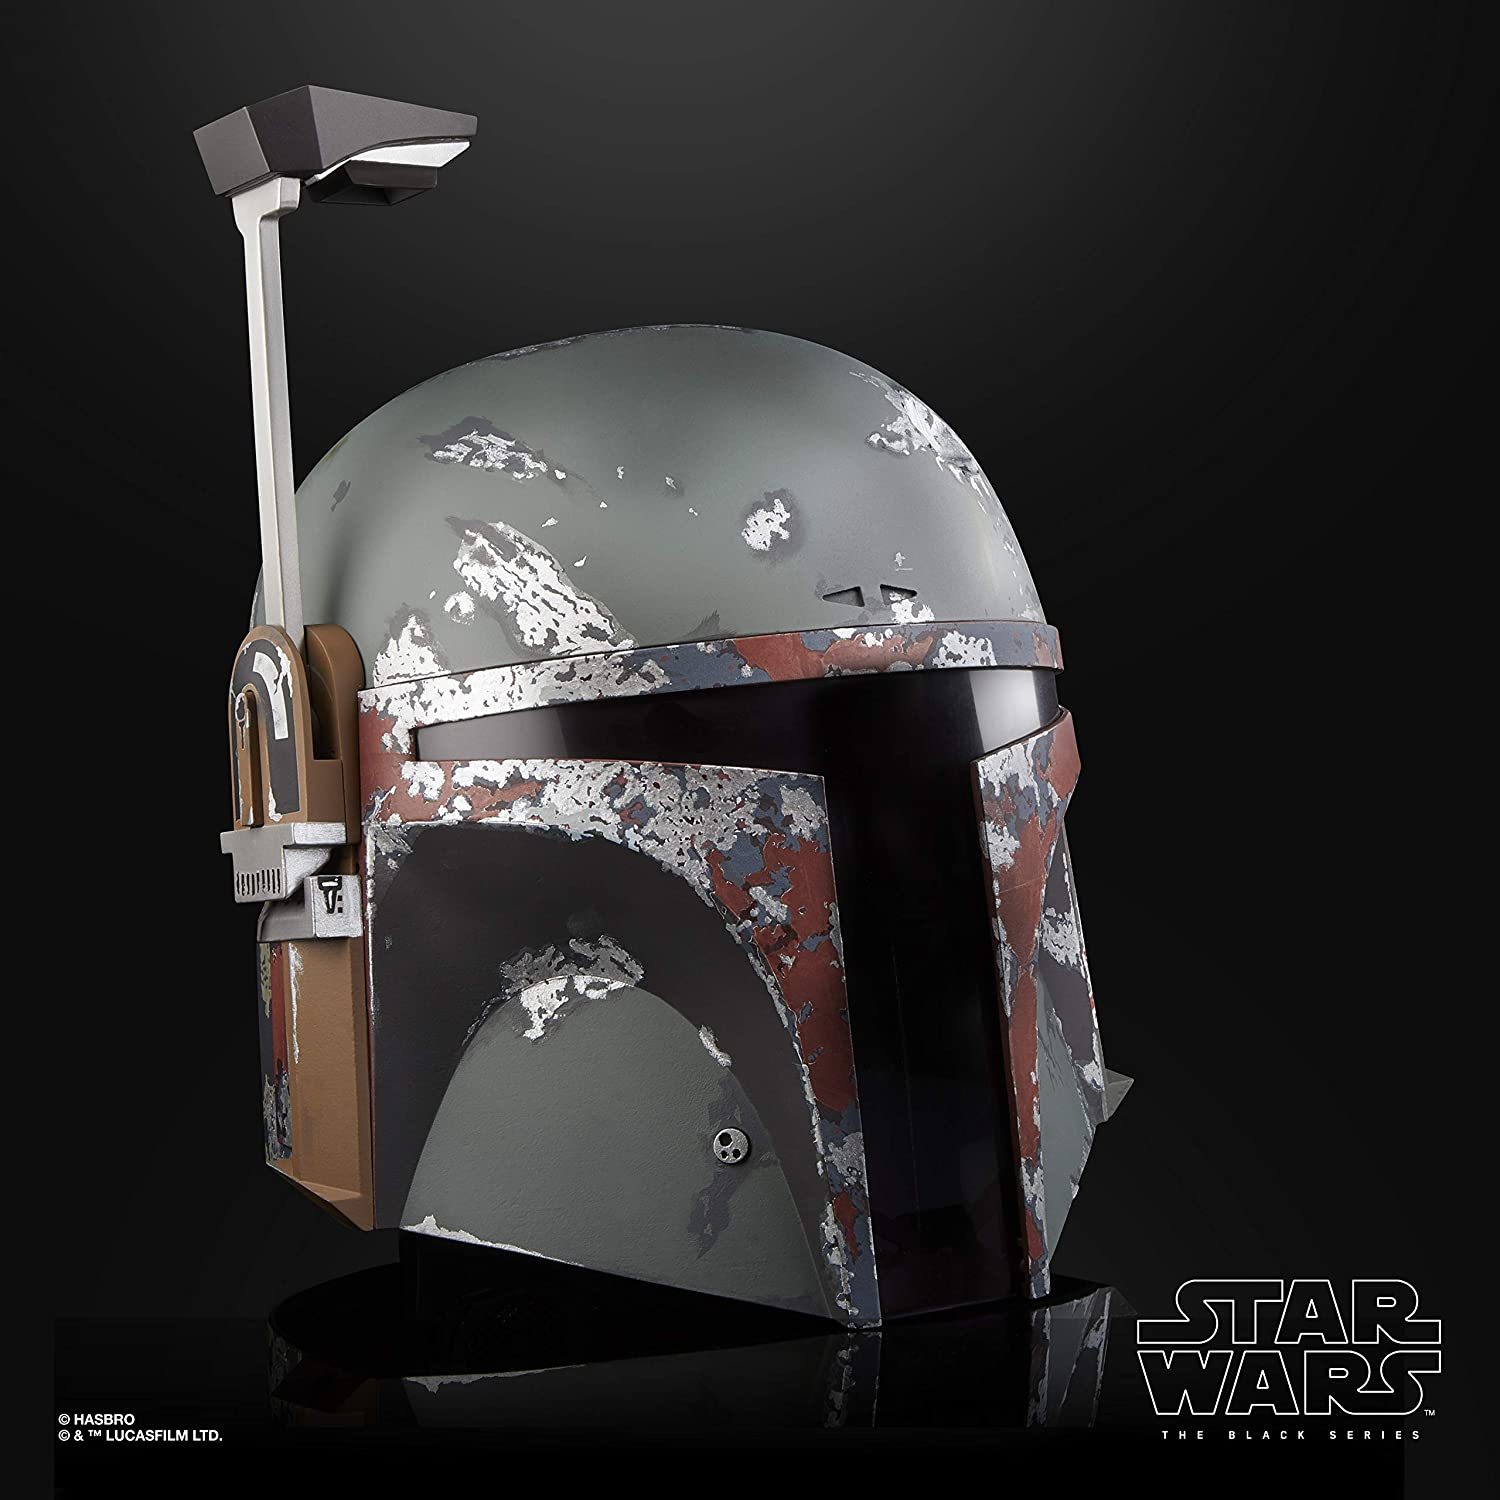 STAR WARS The Black Series Boba Fett Premium Electronic Helmet, The Empire Strikes Back